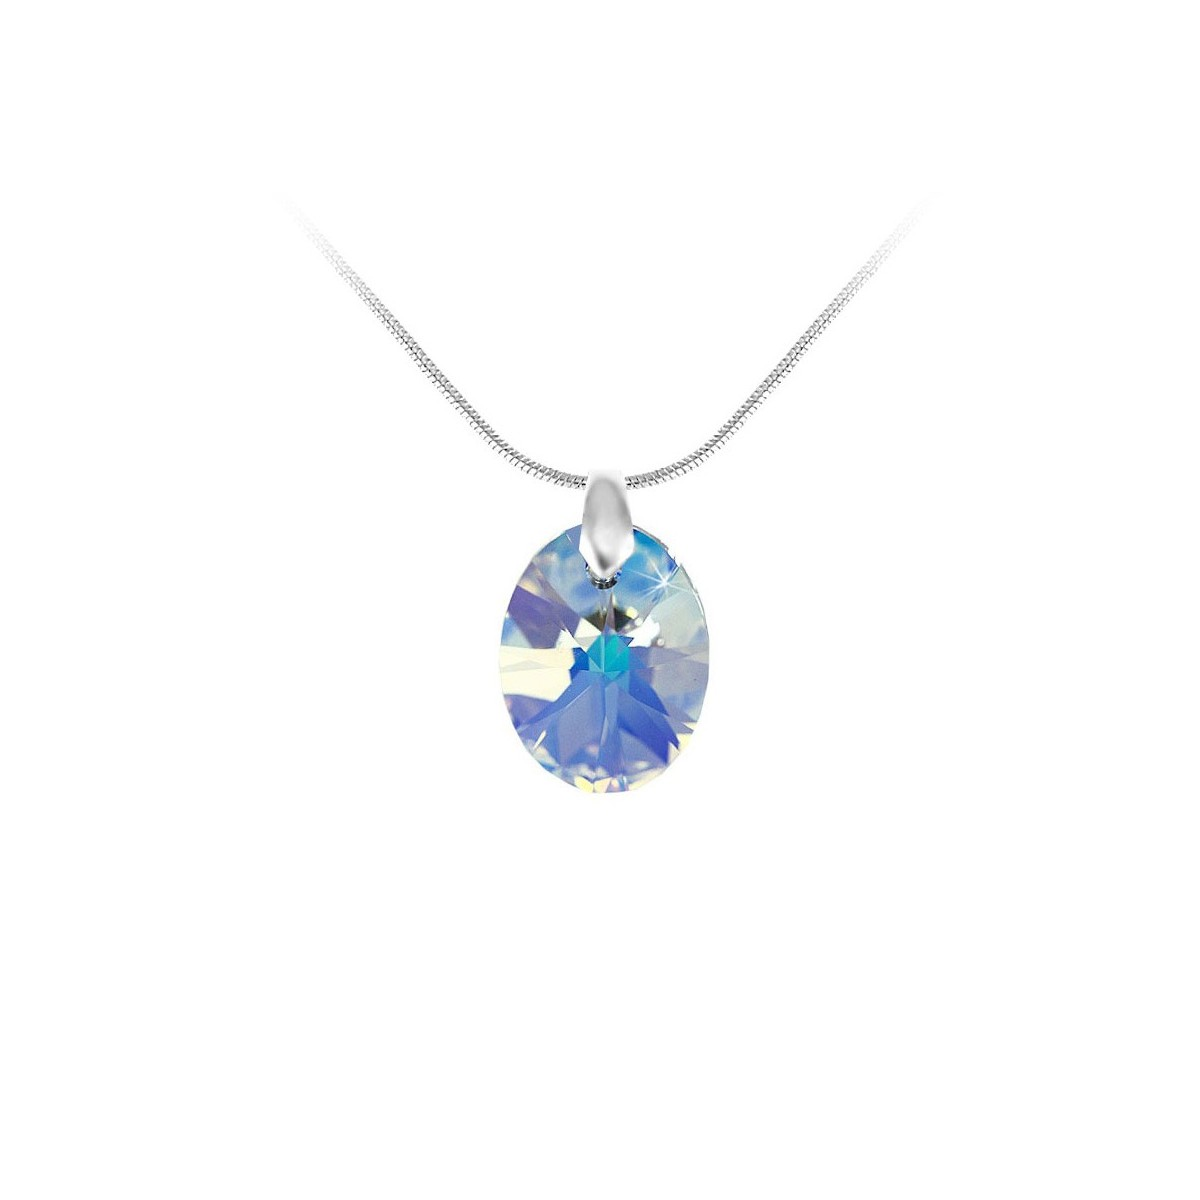 Collier argenté et goutte irisé So Charm made with Crystal from Swarovski